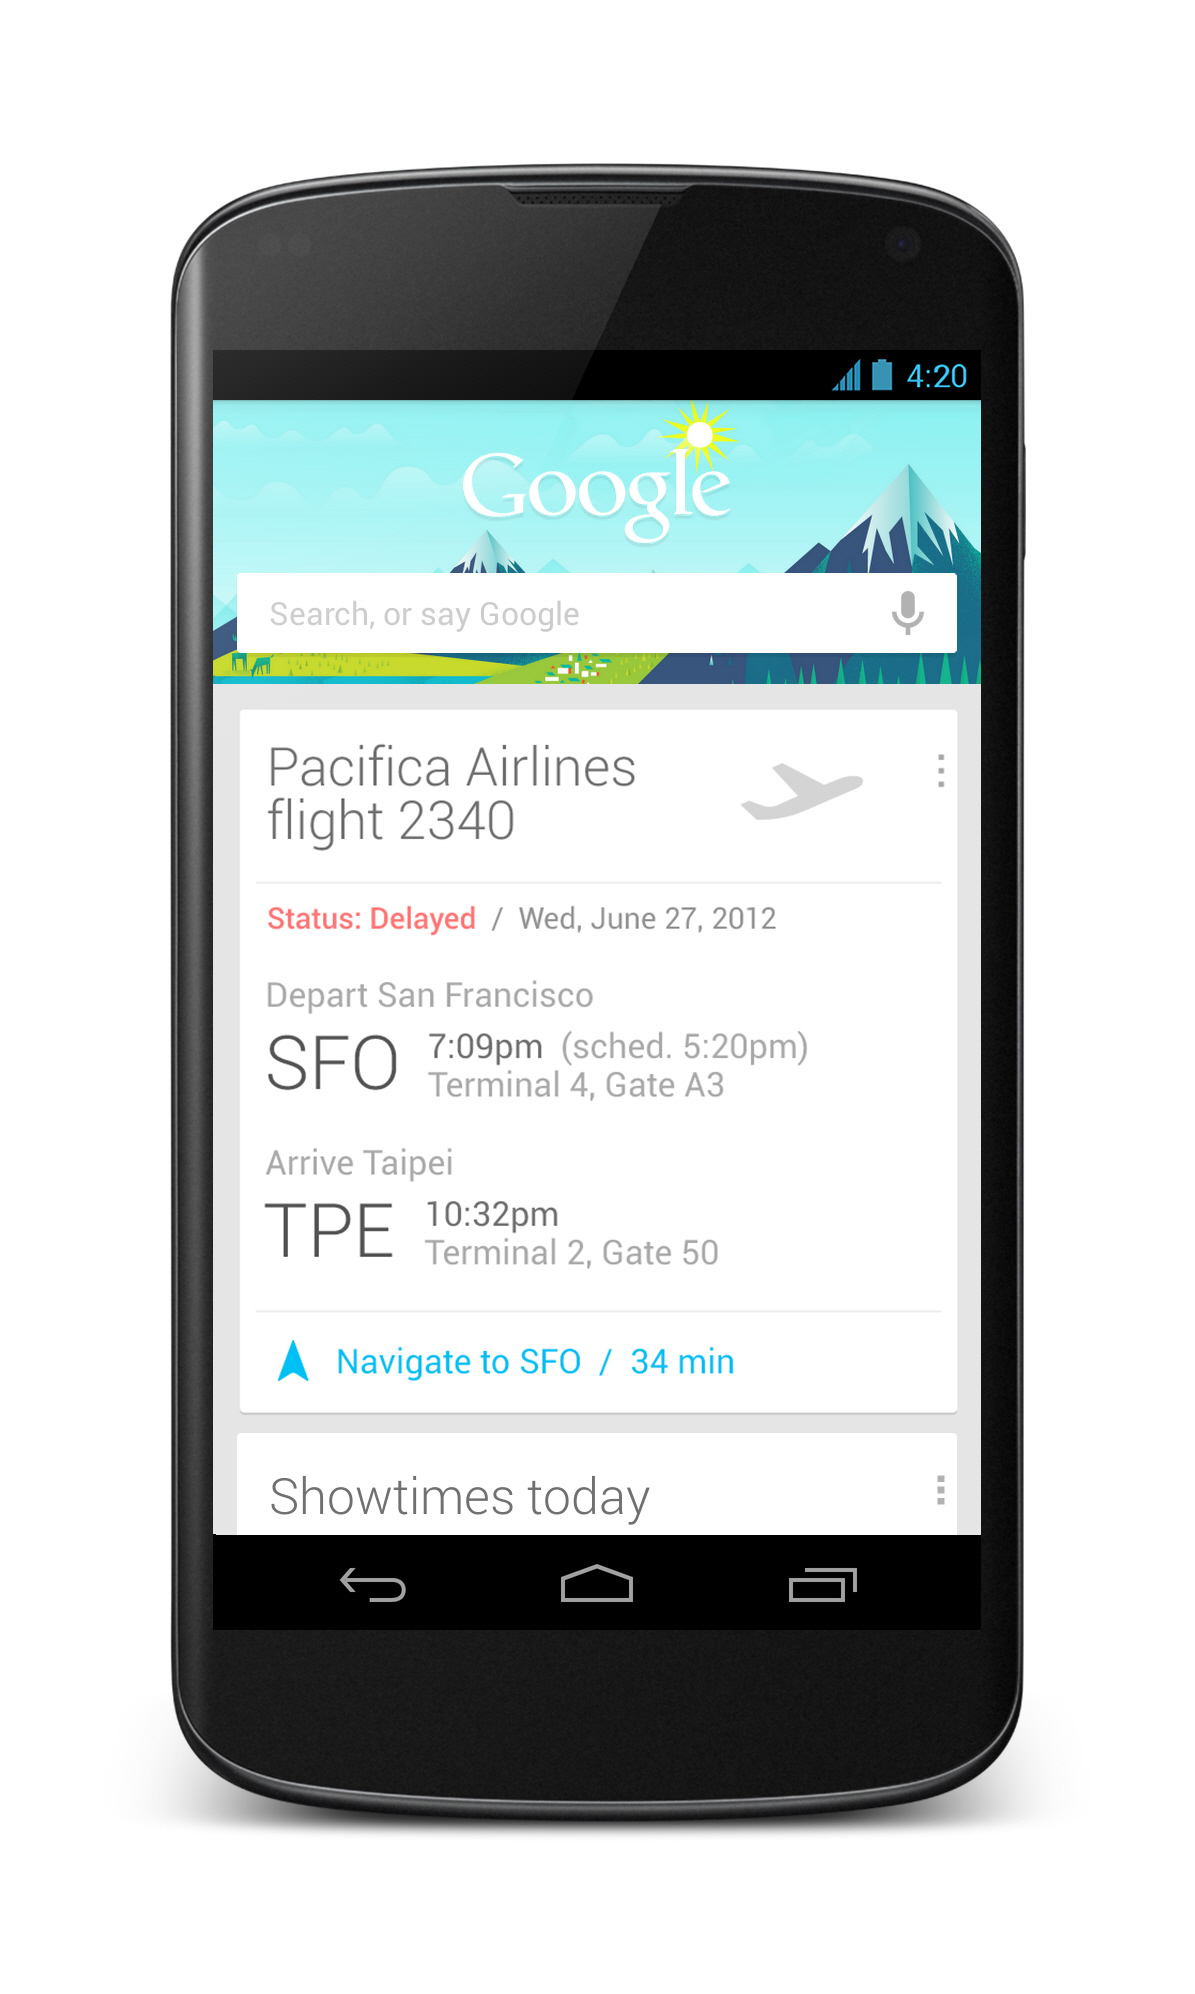 Front view of LG Nexus 4 showing a search for flights on Google.